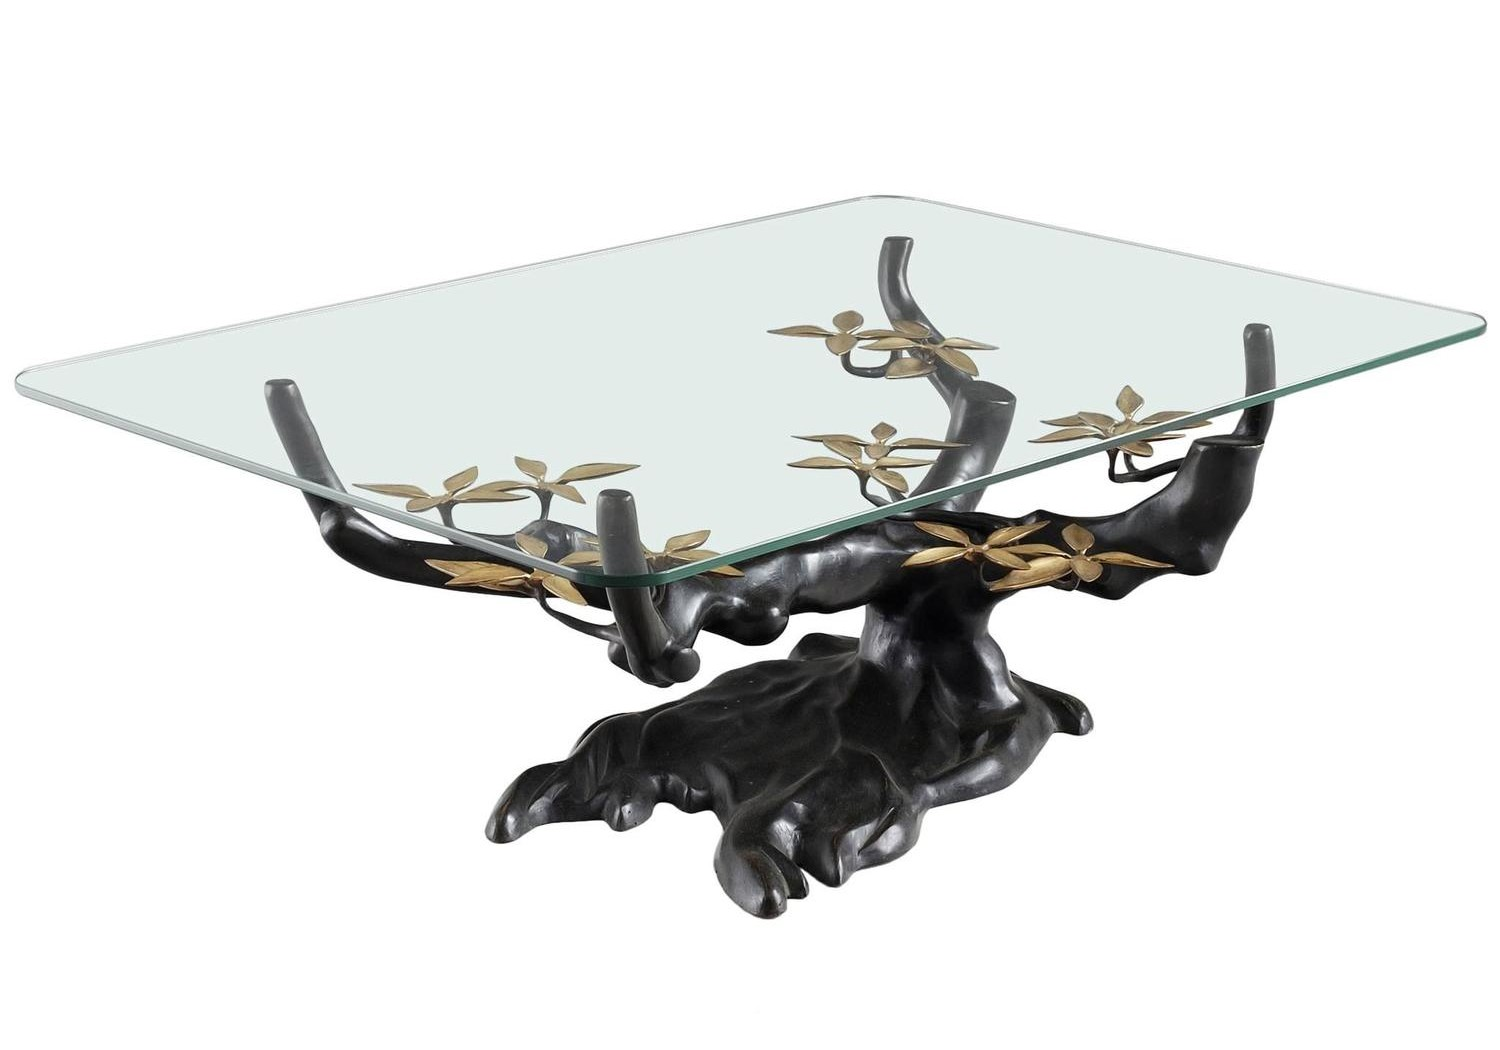 bonsai coffee table designs Out Of Ordinary Must-Have Coffee Table Designs 10 Uniquely Beautiful Coffee Tables 1 e1464865384932